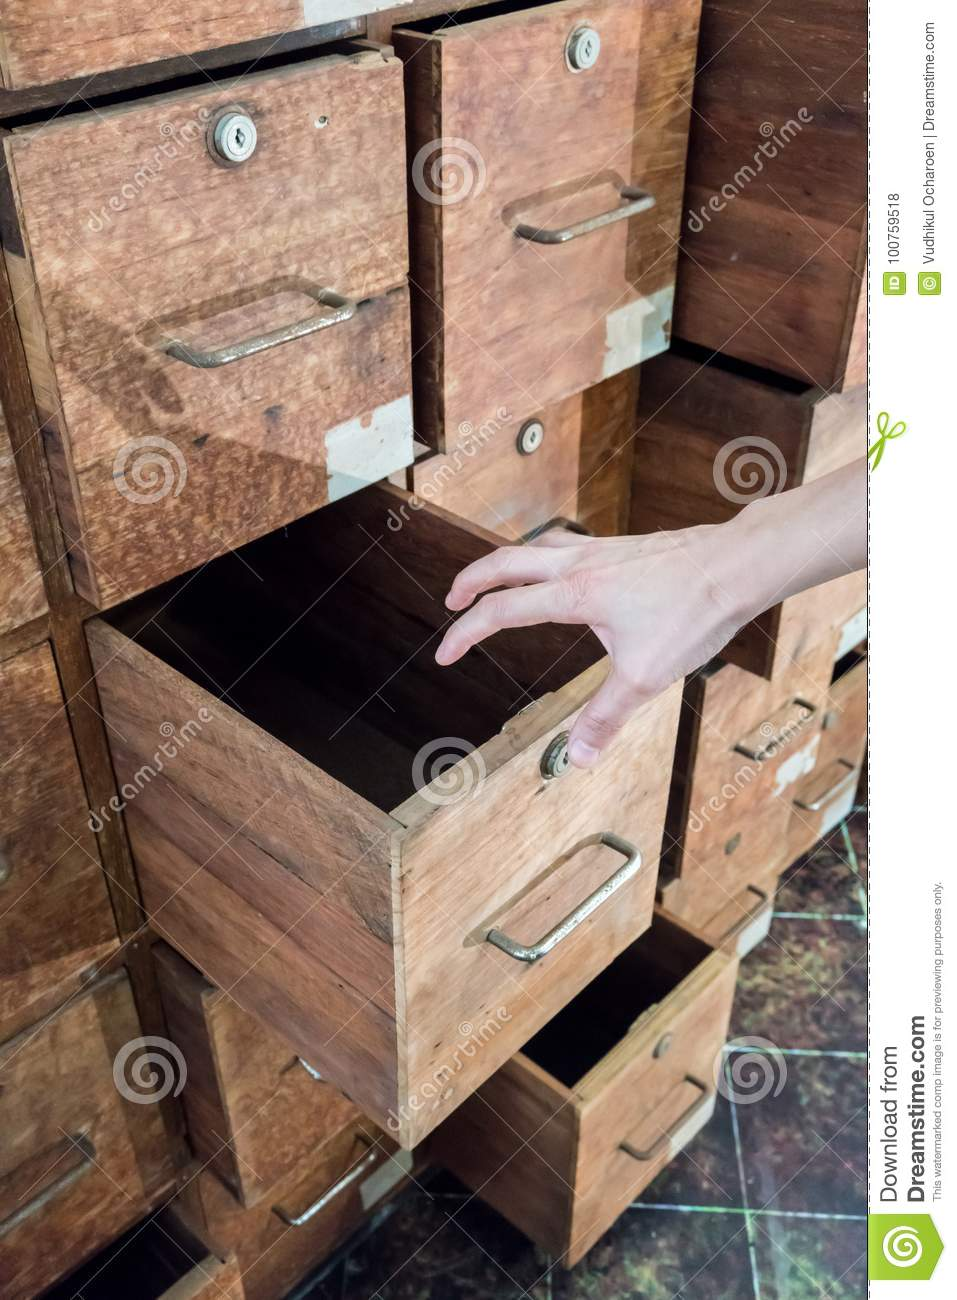 Psychiatric hand opening a drawer of old haunted wooden cabinet